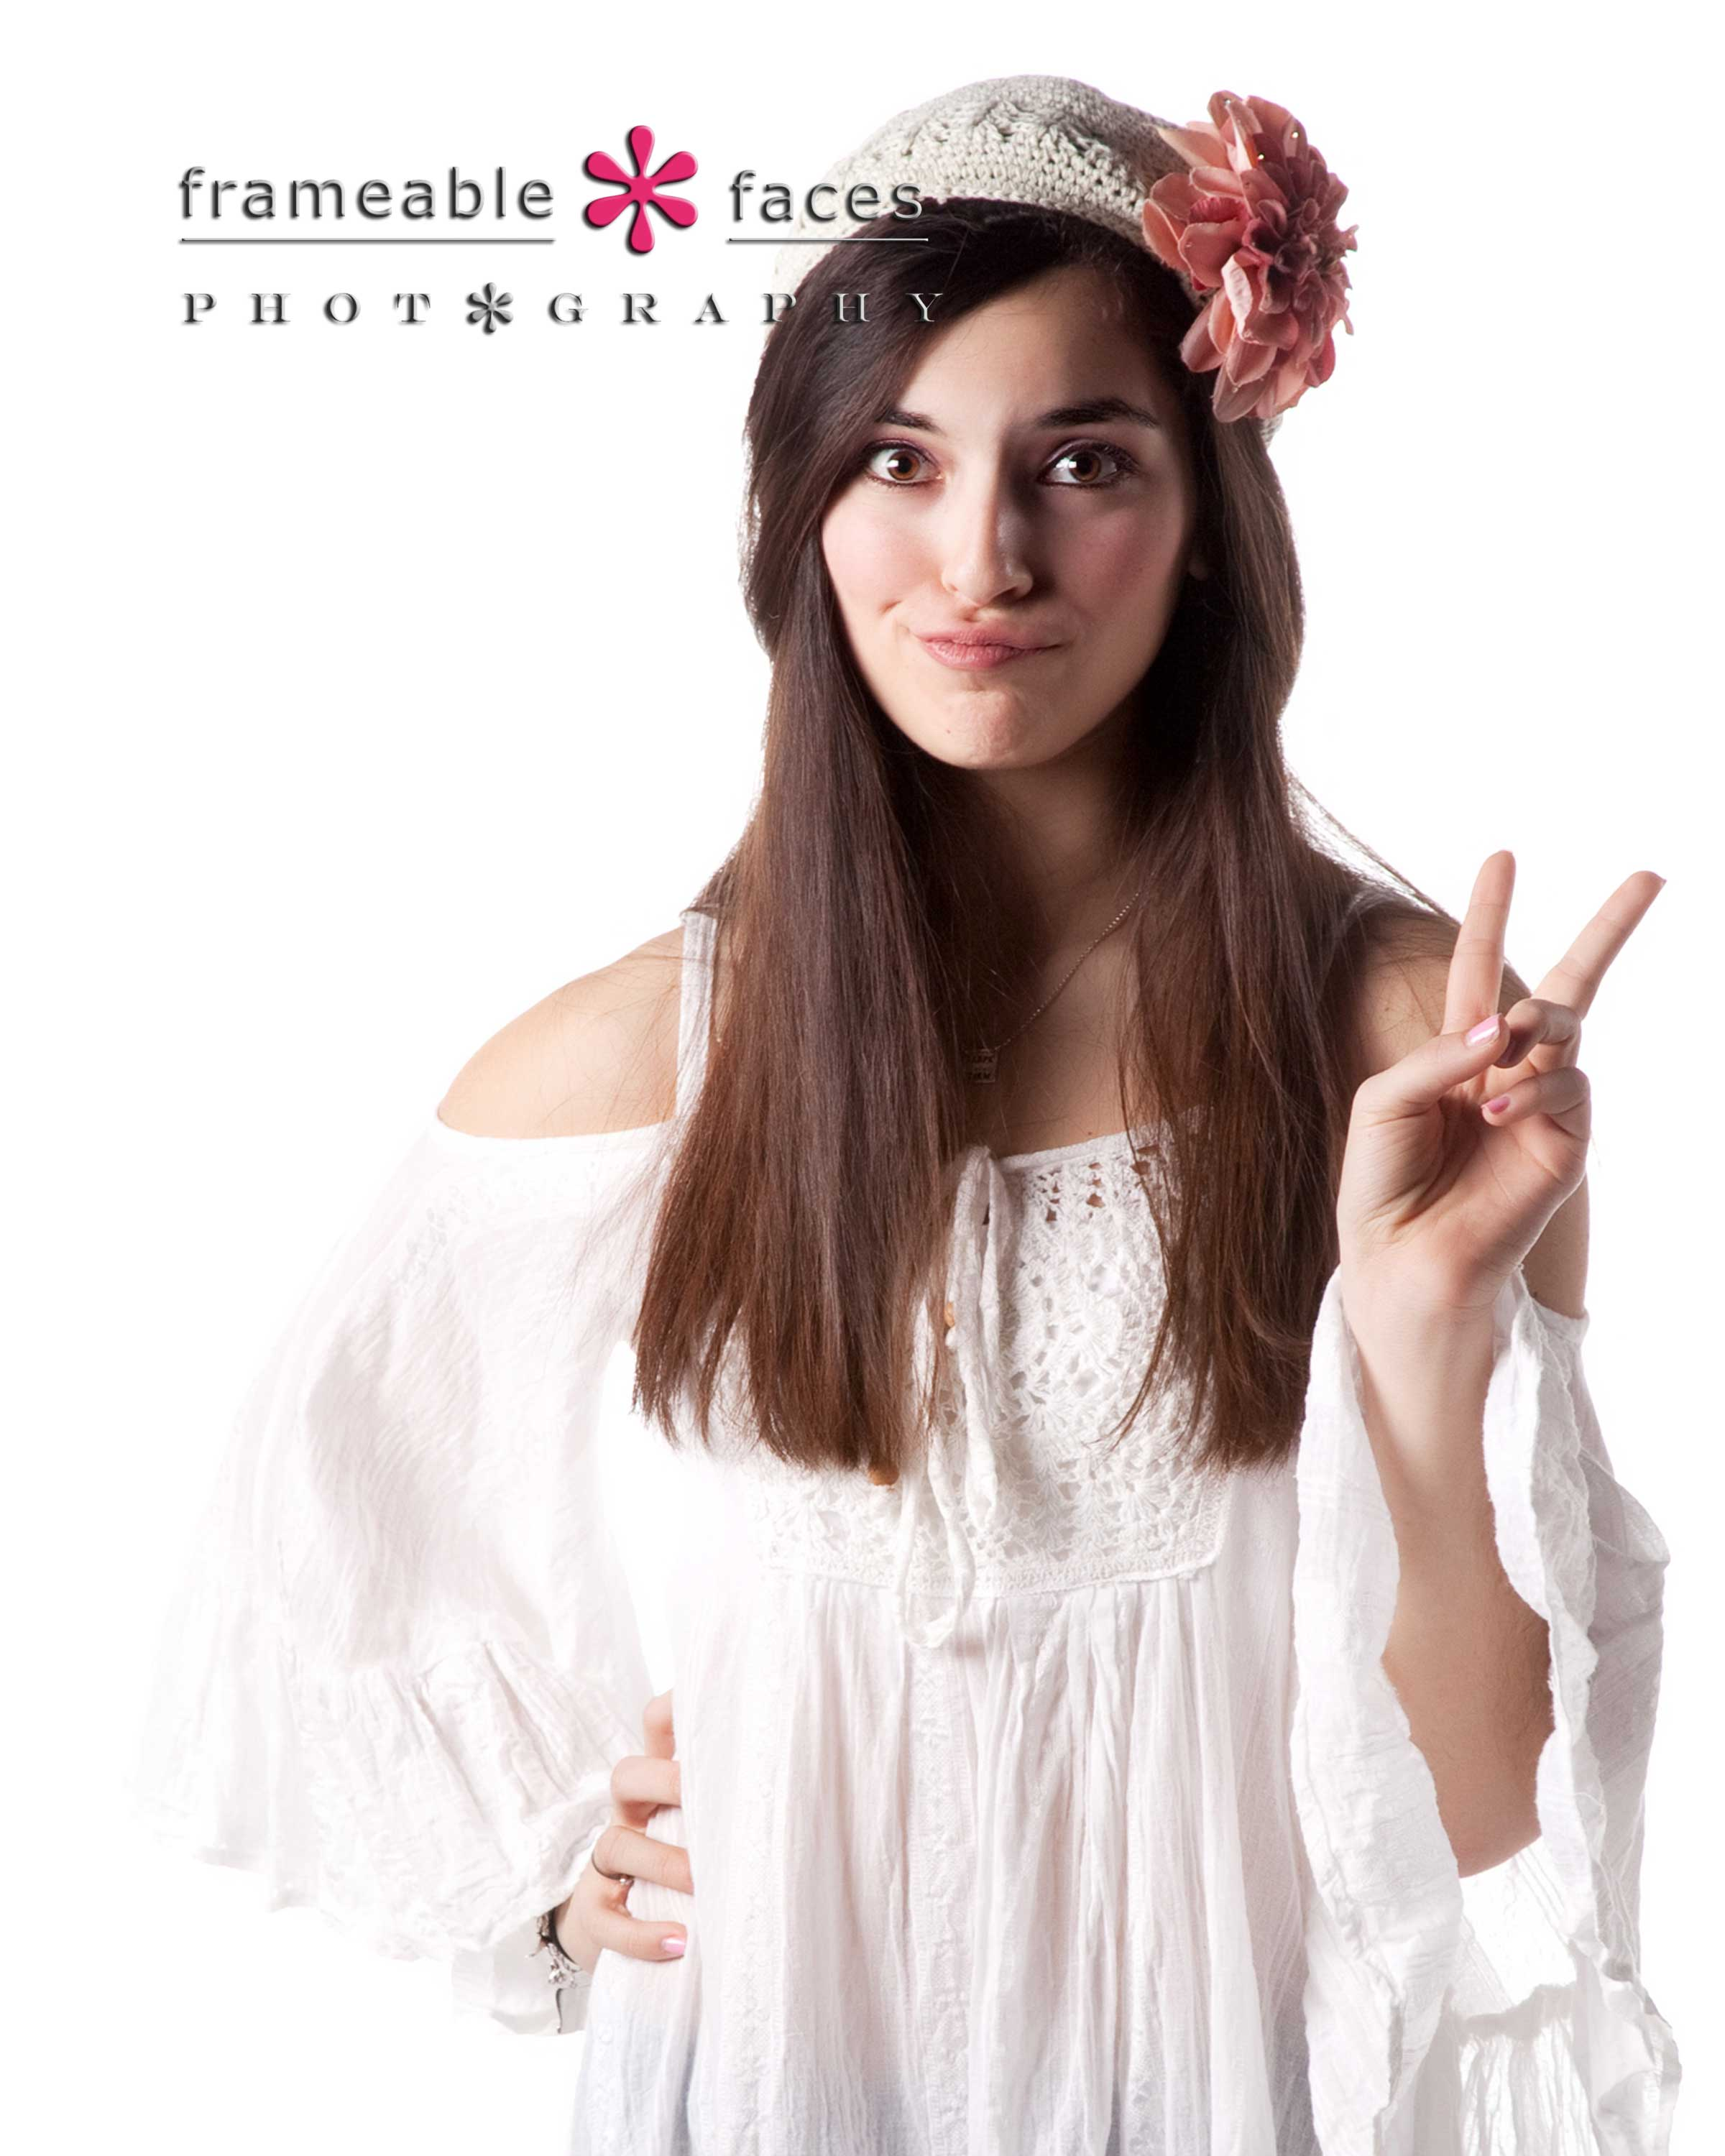 Frameable Faces Spokesmodel Photo Class Of 2014